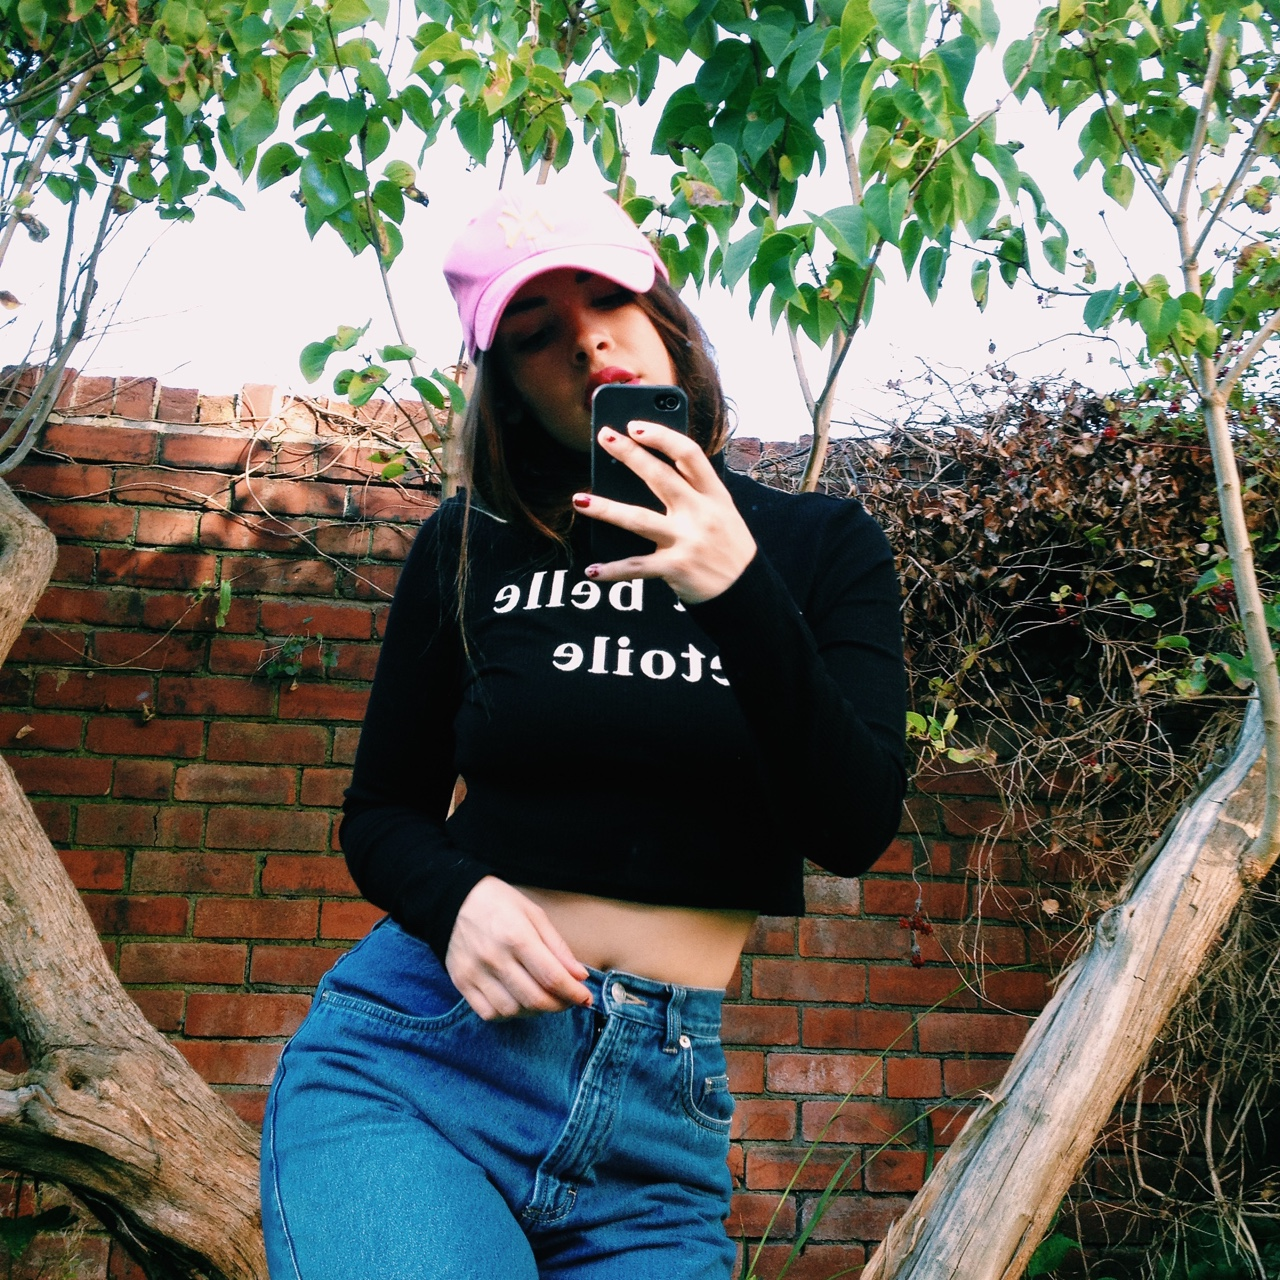 Black And White French Saying Crop Top A La Belle Depop